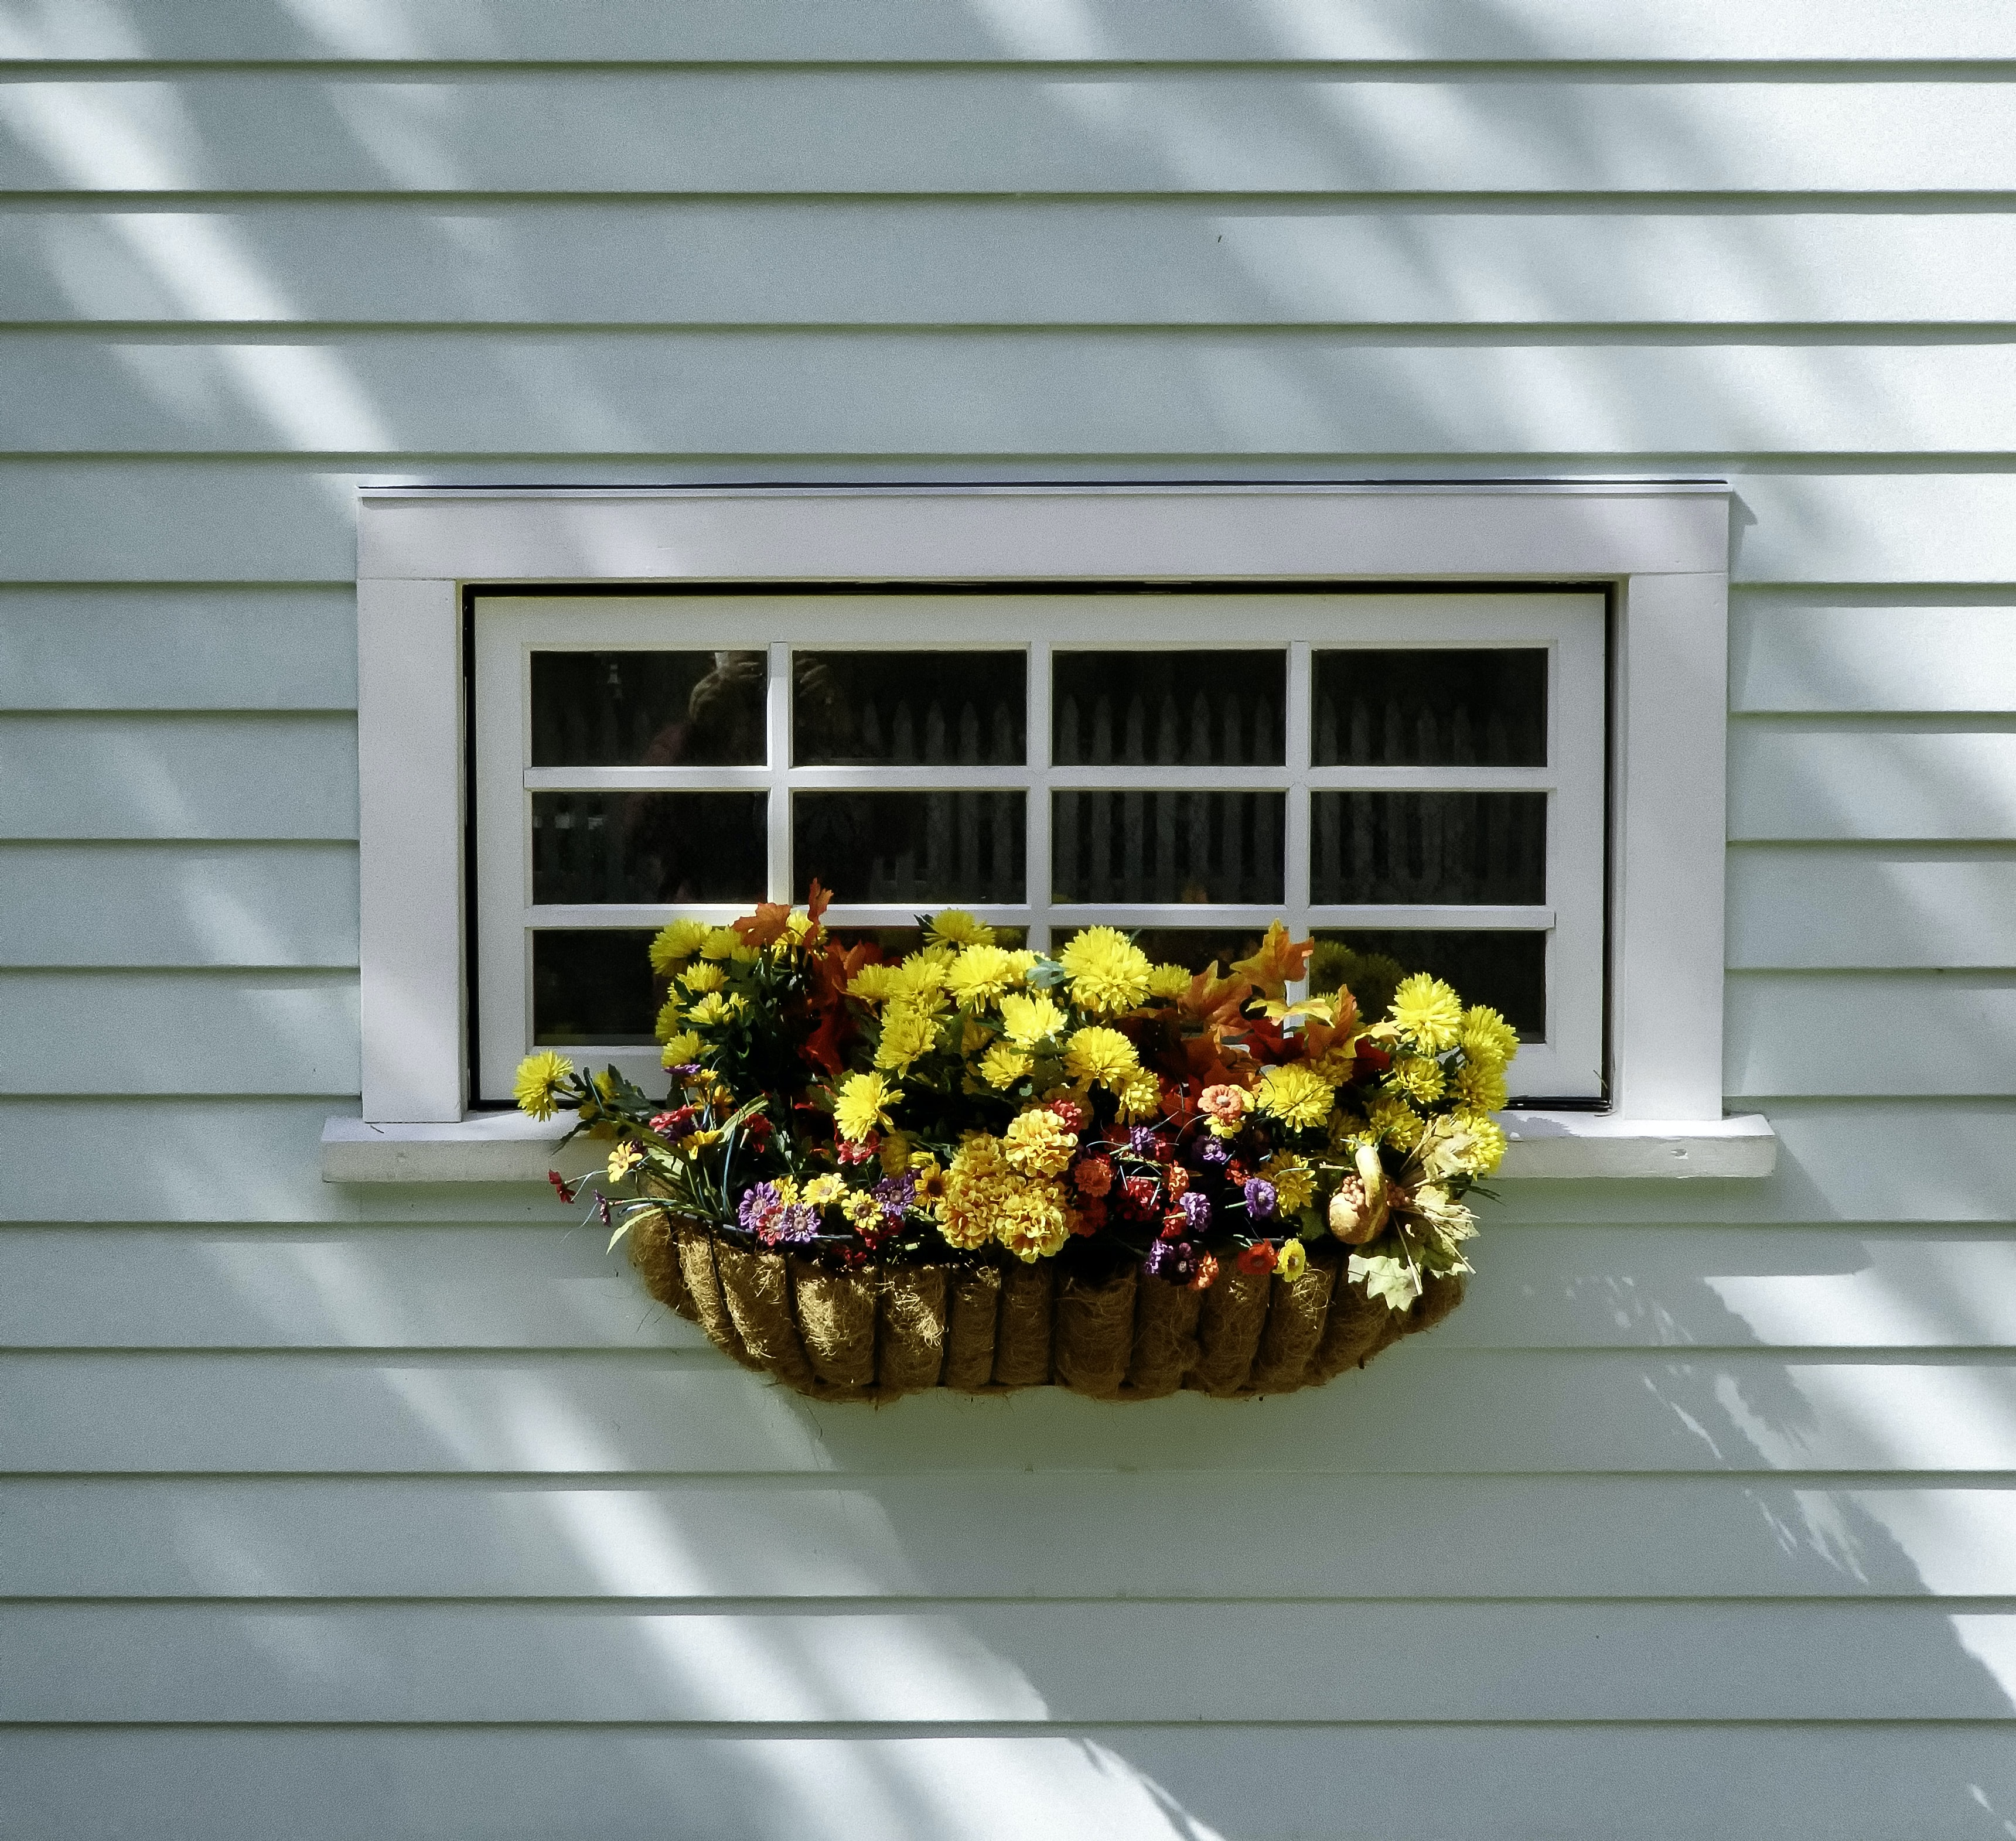 assorted flowers on window